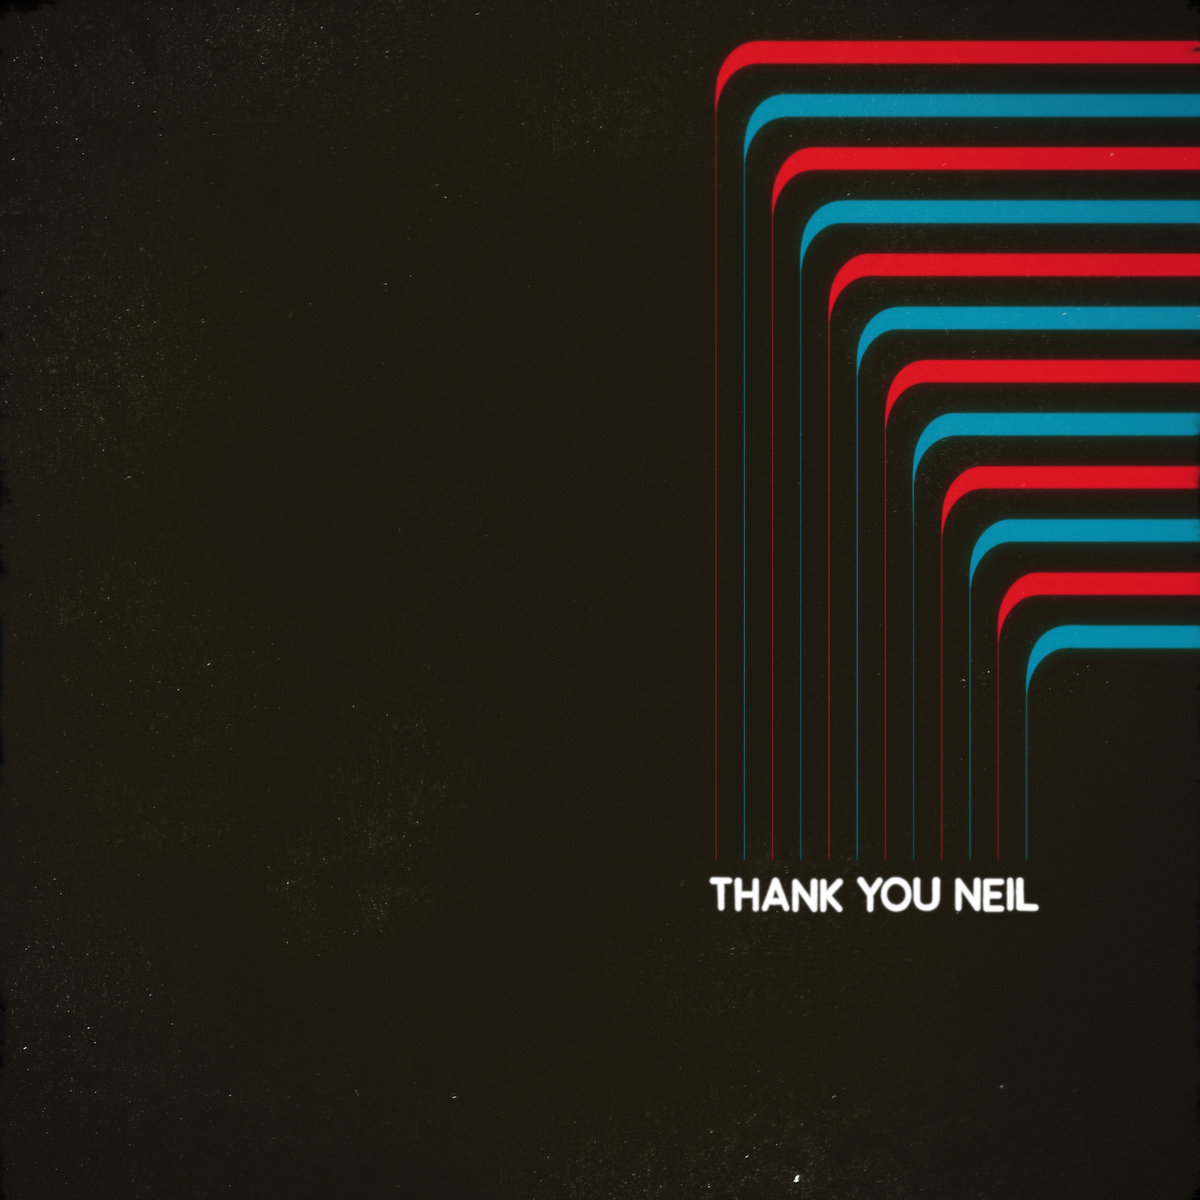 Dumbo Gets Mad - Universal Guide @ 'Thank You Neil' album (alternative, los angeles)